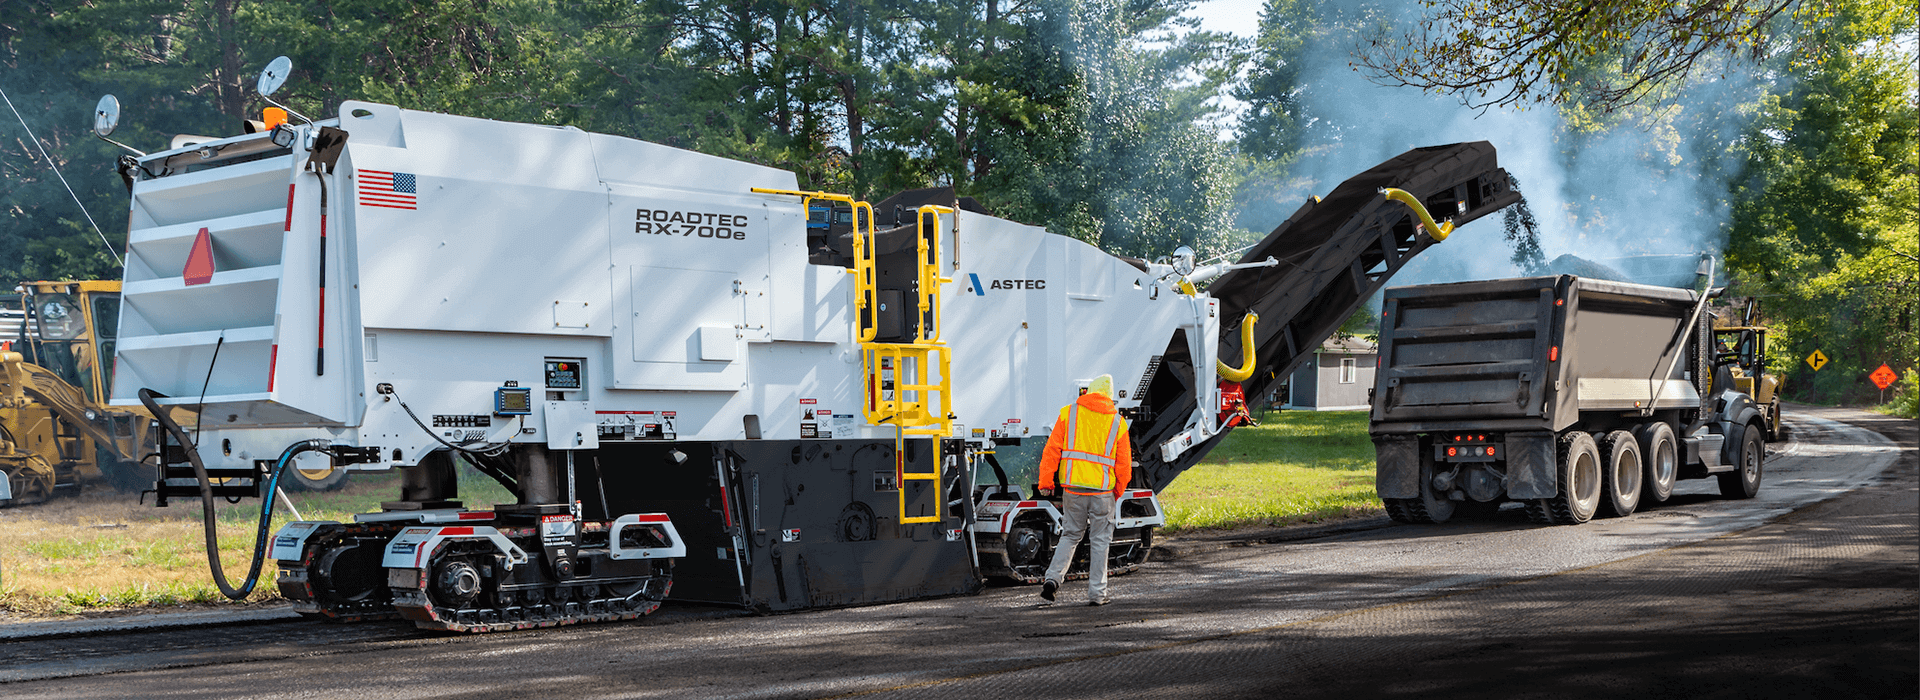 Roadtec RX-700 cold planer milling asphalt off the road surface into a dump truck